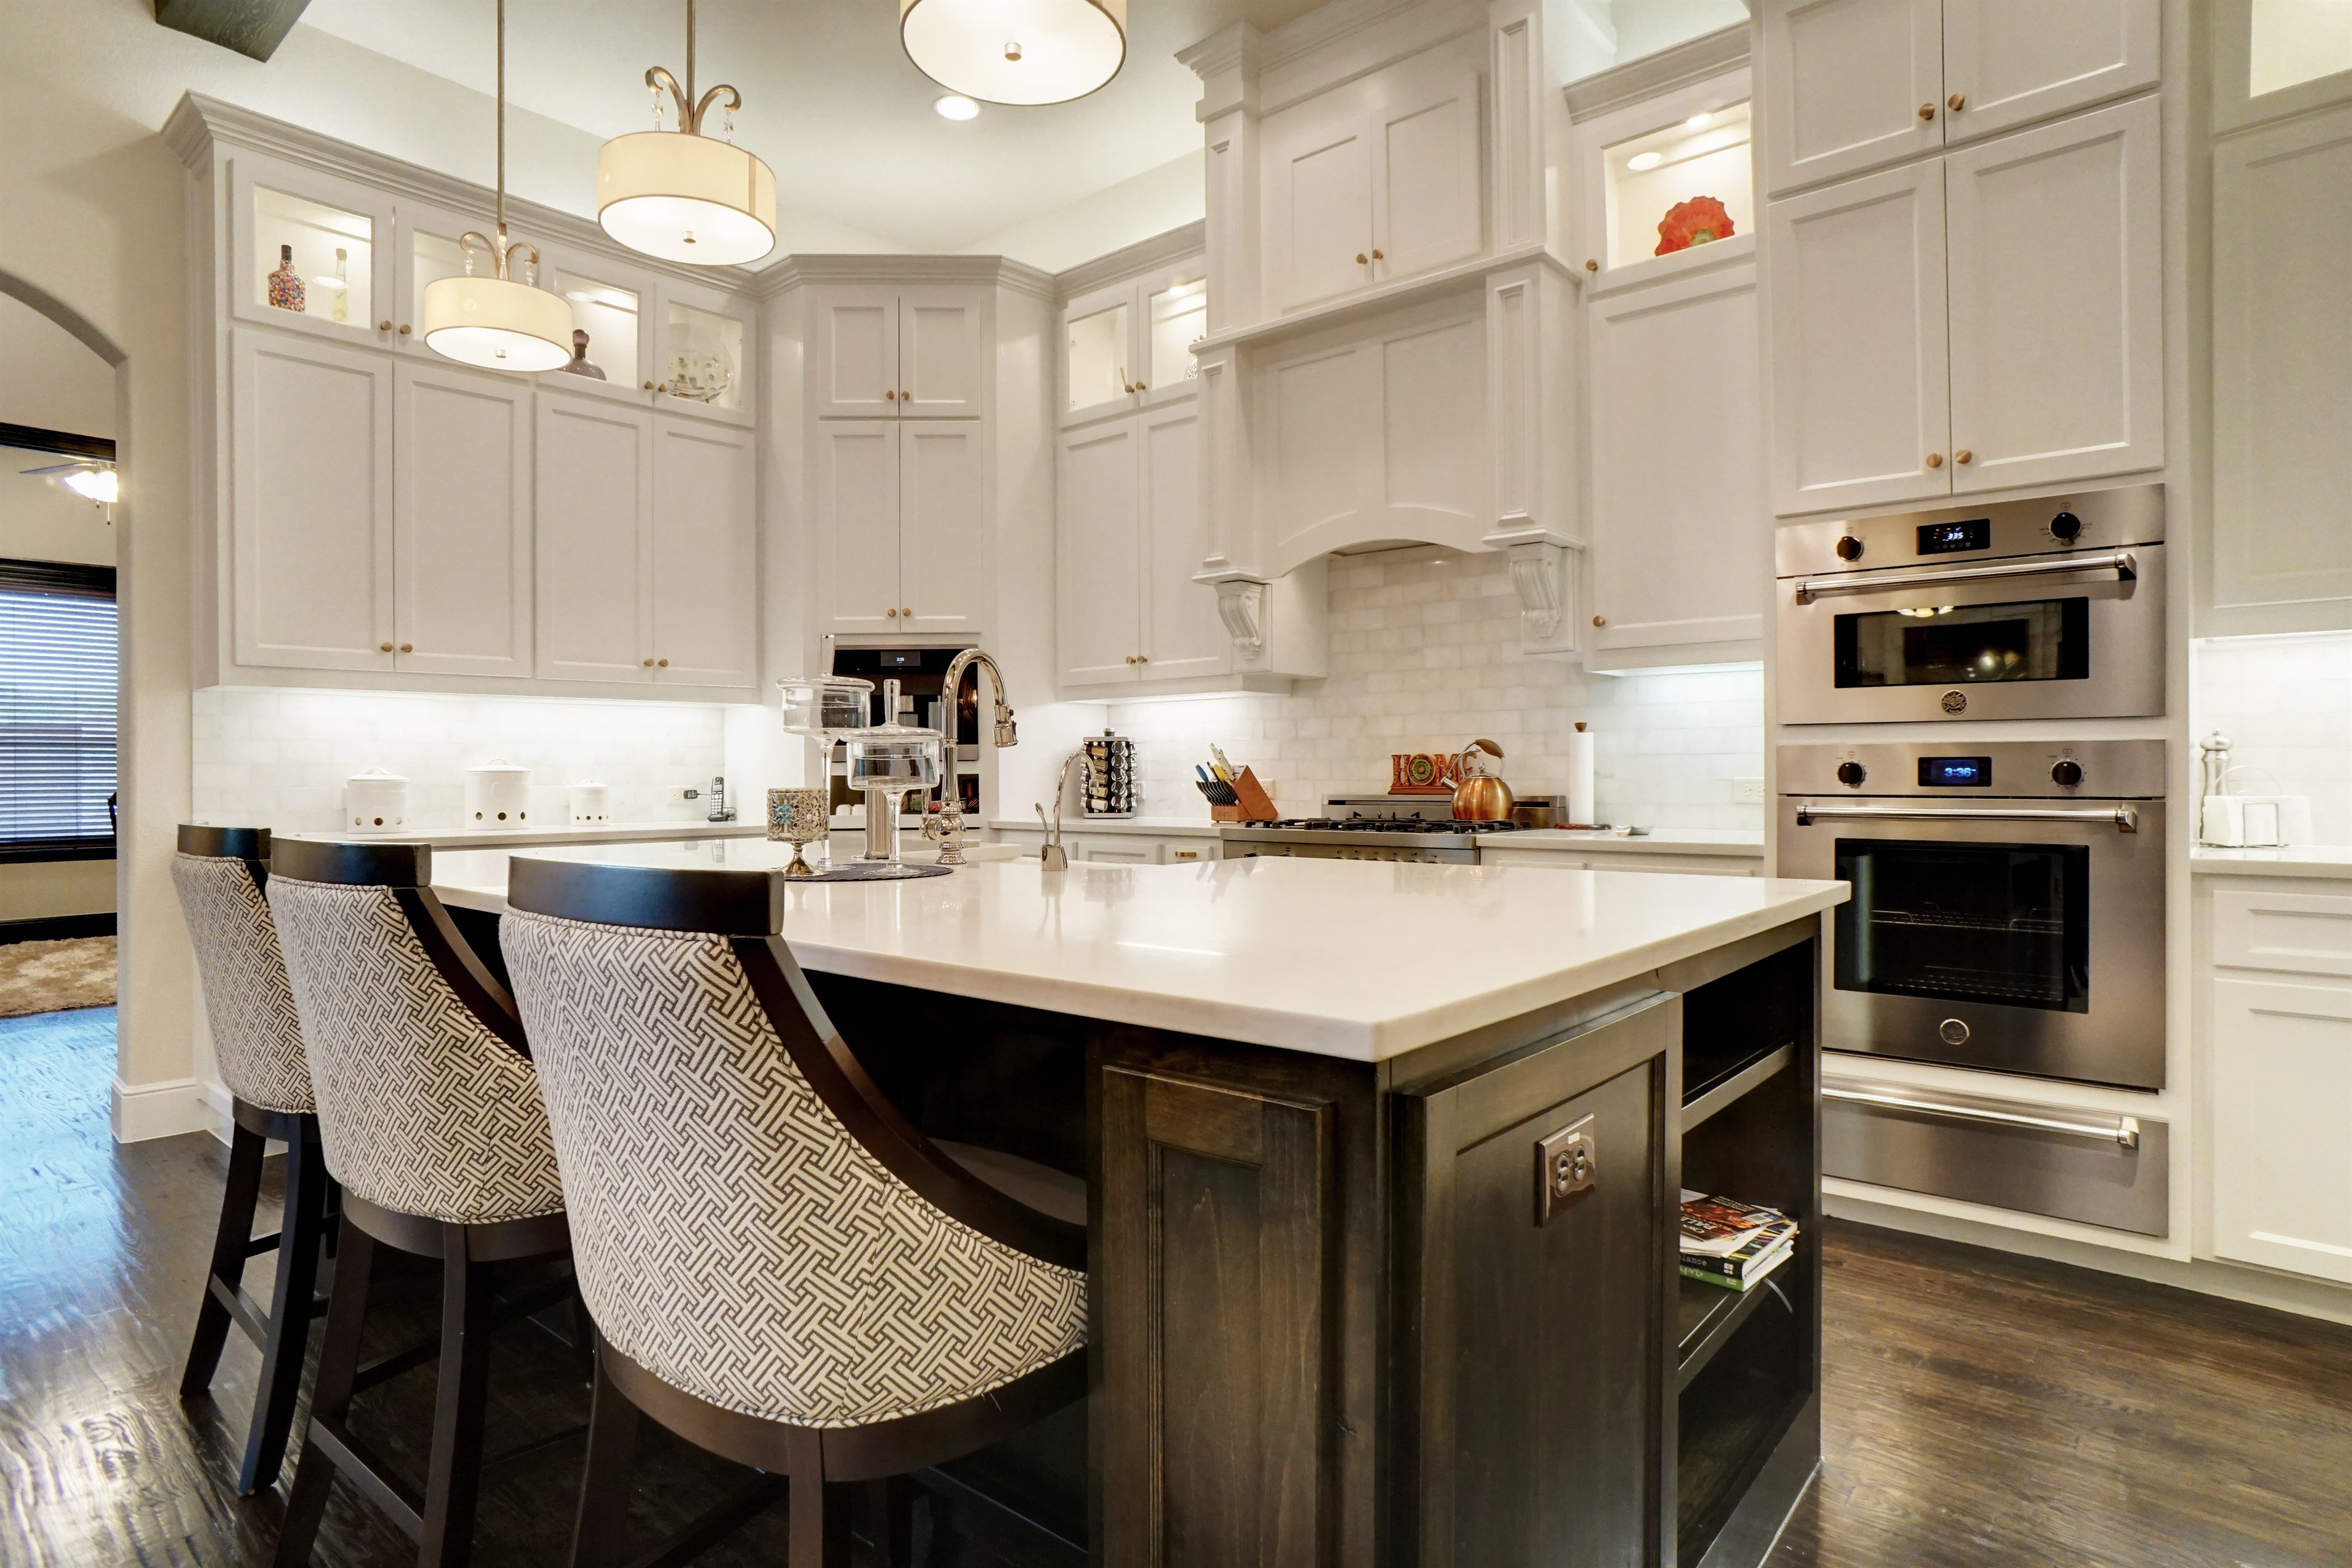 Statewide Remodeling - San Antonio, TX reviews | Cabinetry ...